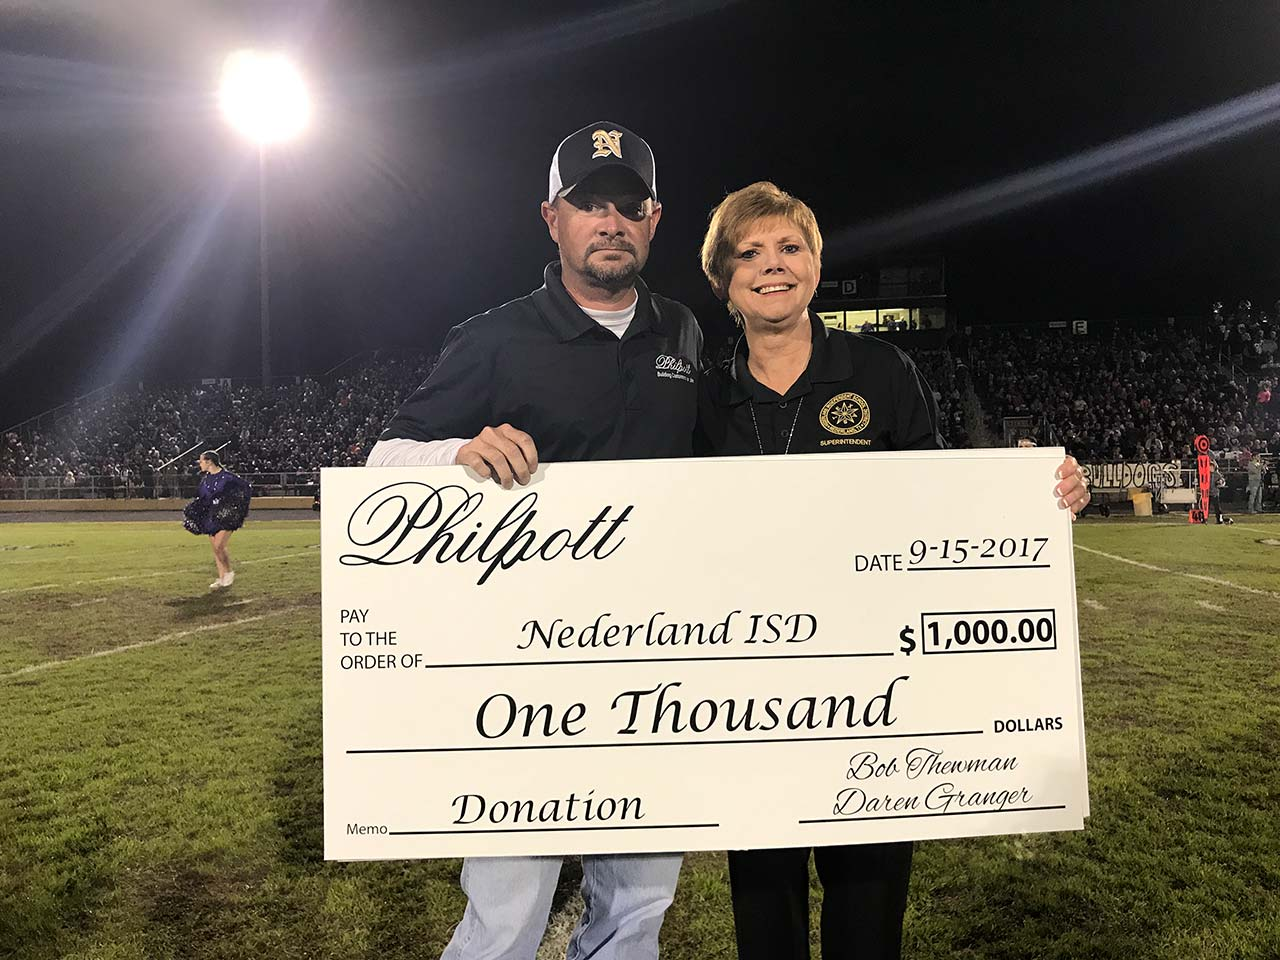 Philpott presents a check to Nederland ISD